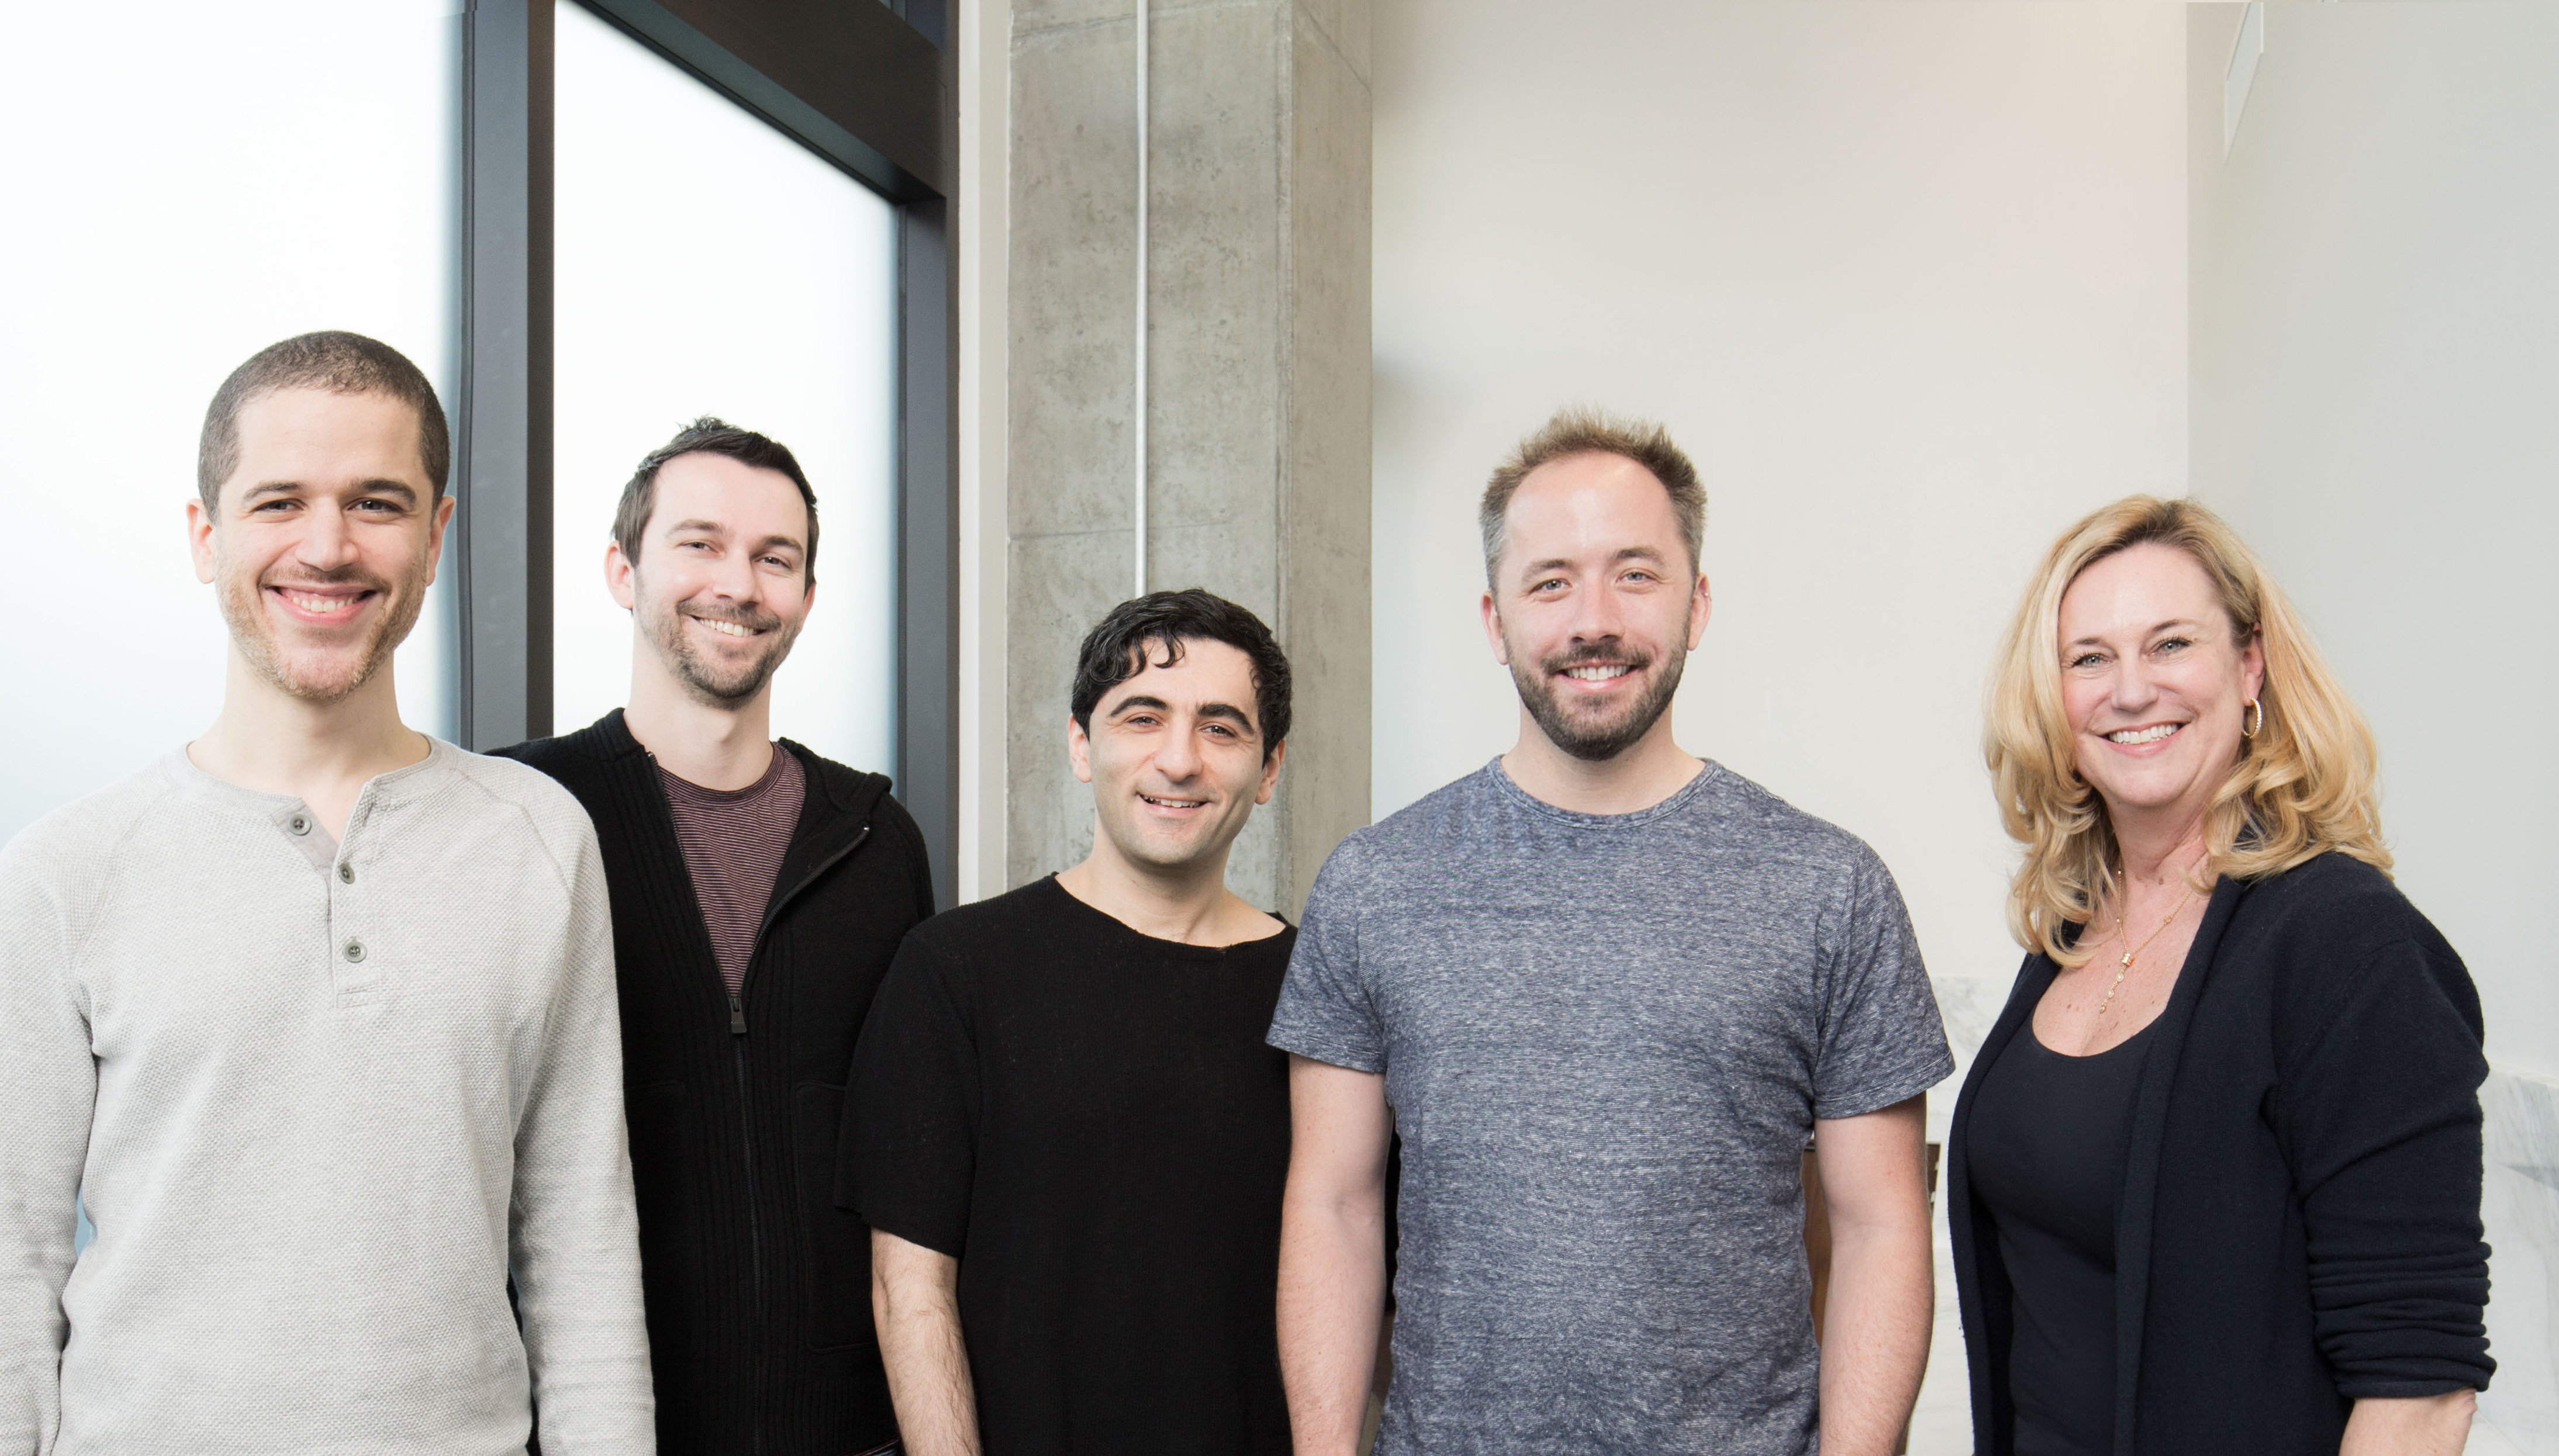 Dropbox is acquiring HelloSign to improve document workflows for